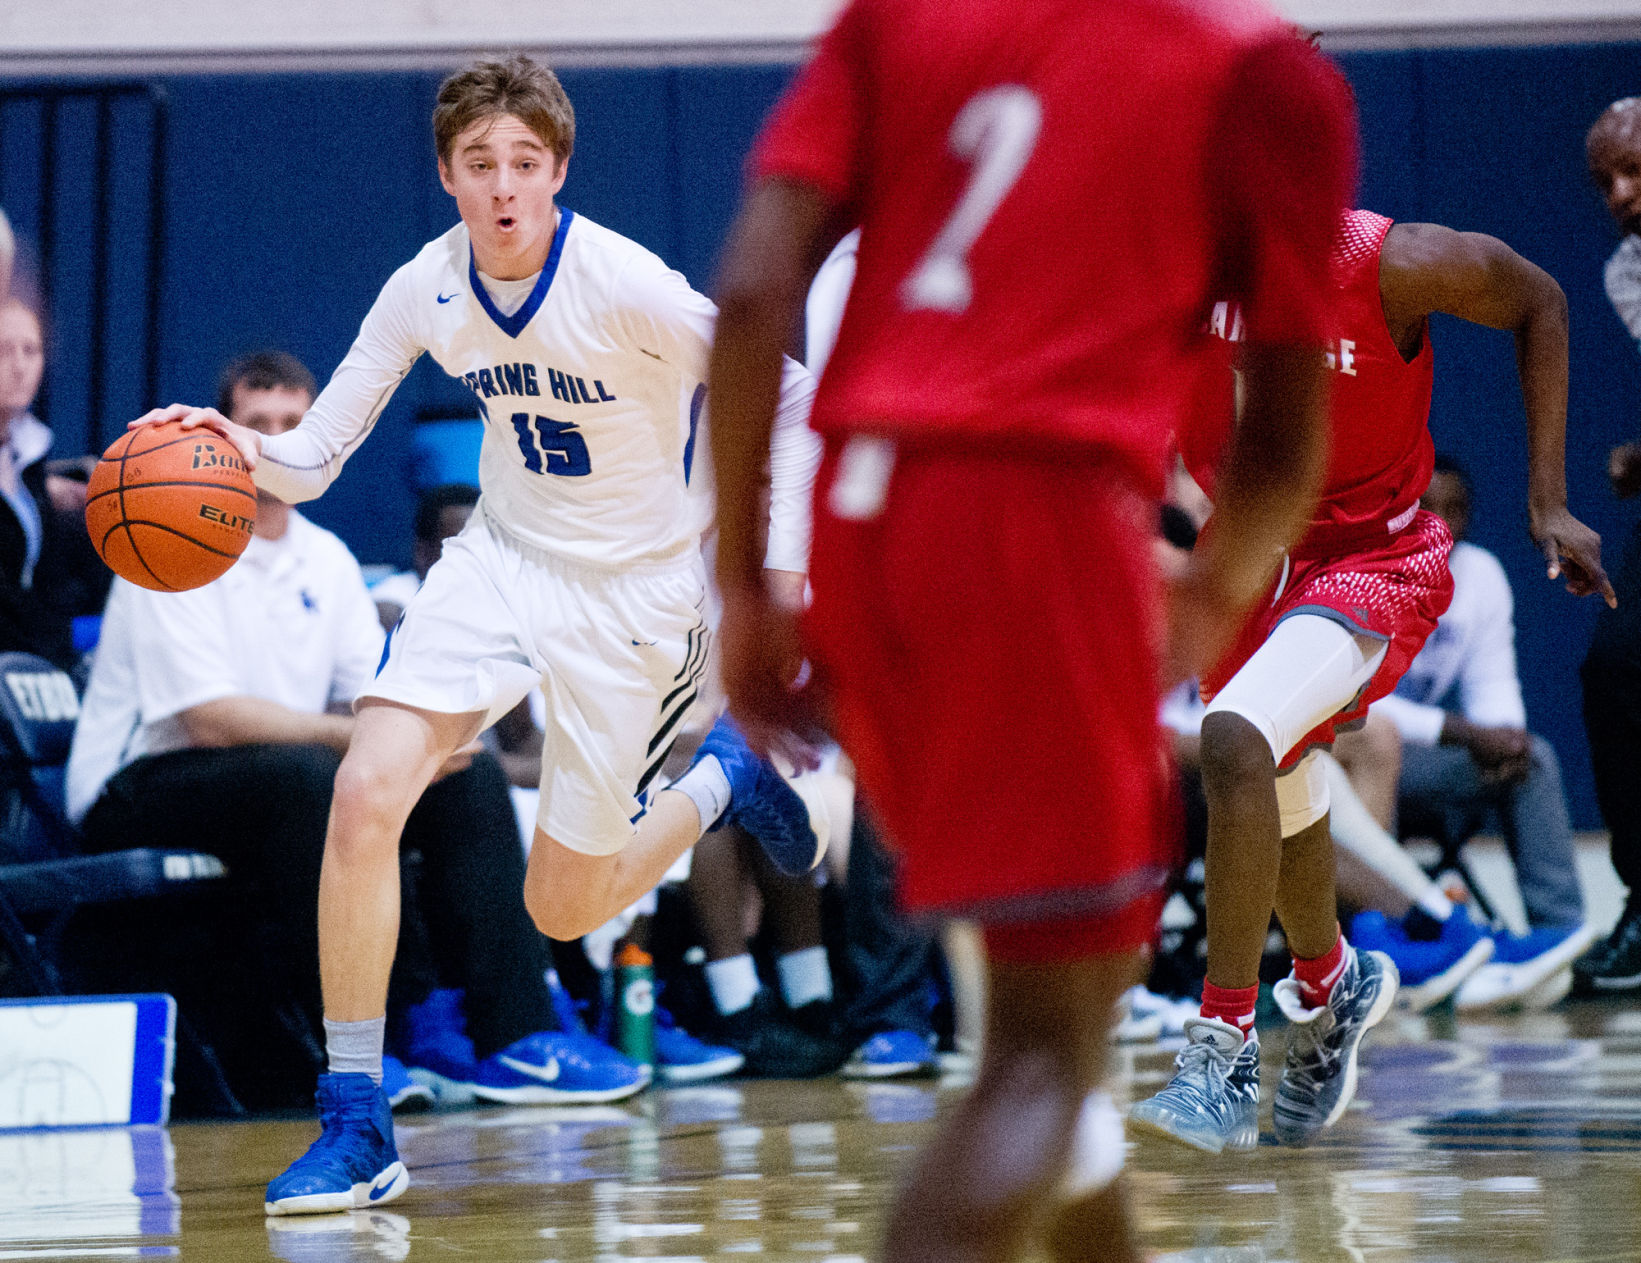 ET Basketball: SH's Caron, Ender earn top honors in District 15-4A